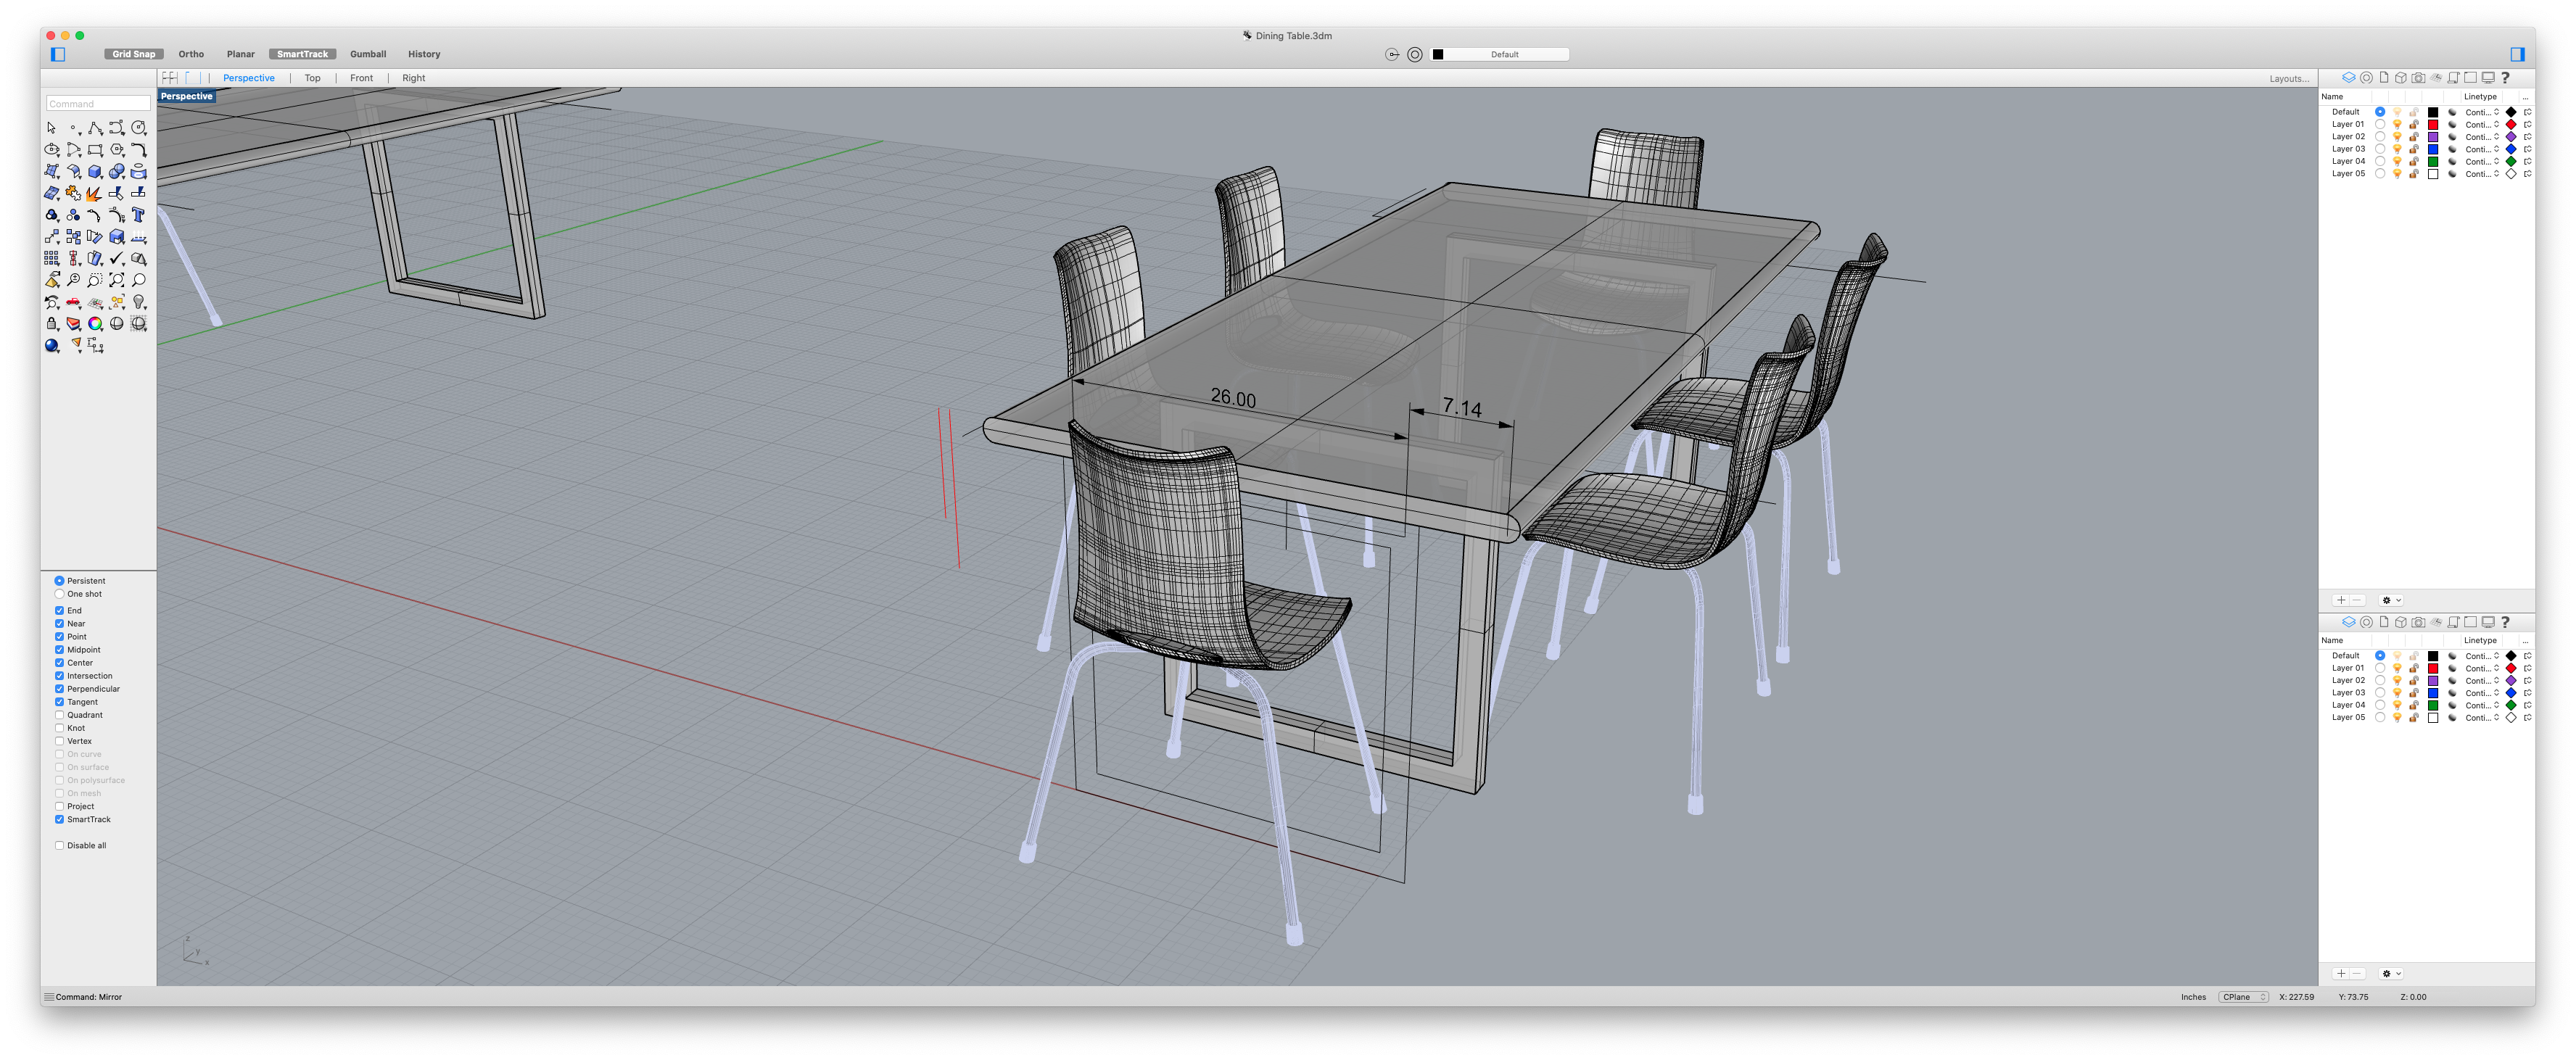 3D Render of the table for scale